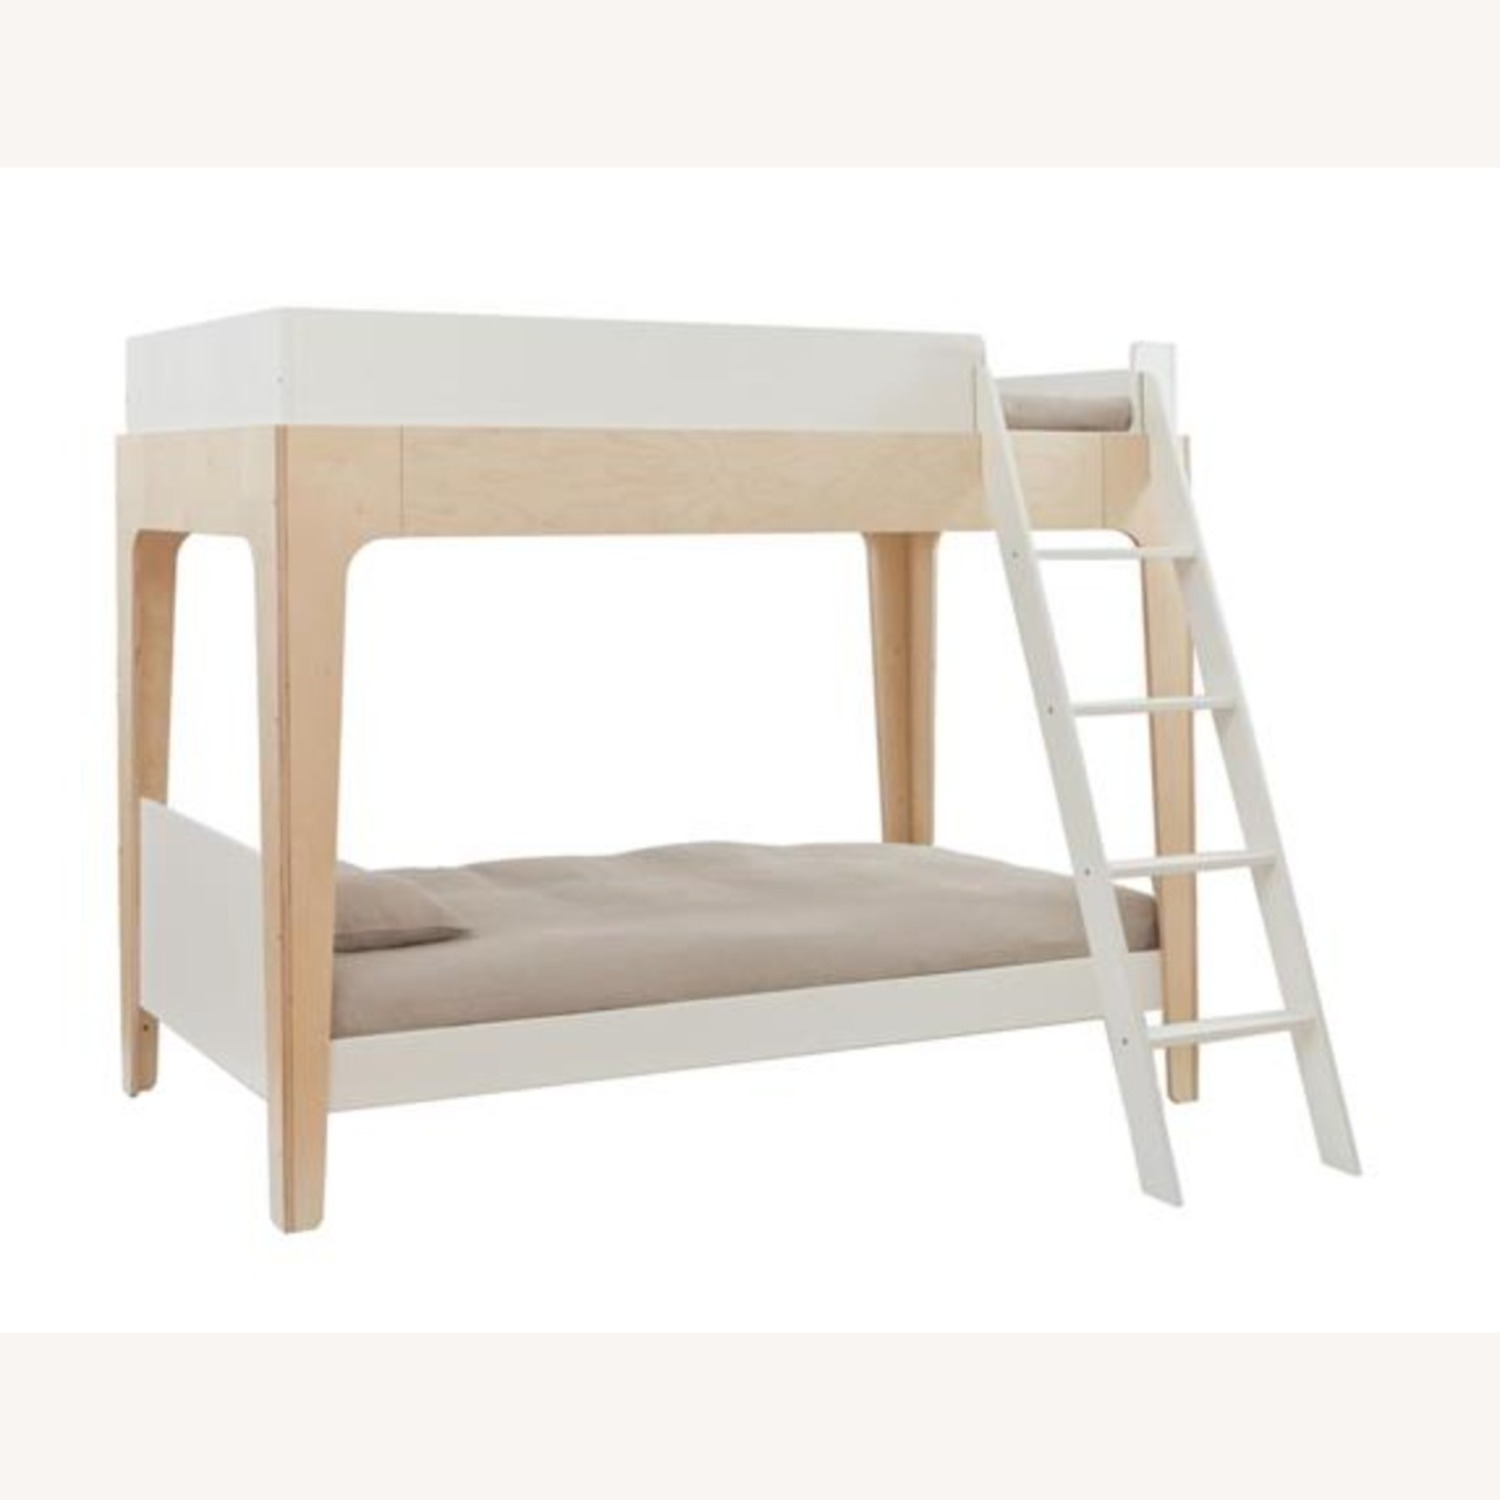 Oeuf Perch Modern Classic Birch Bunk Bed - image-5